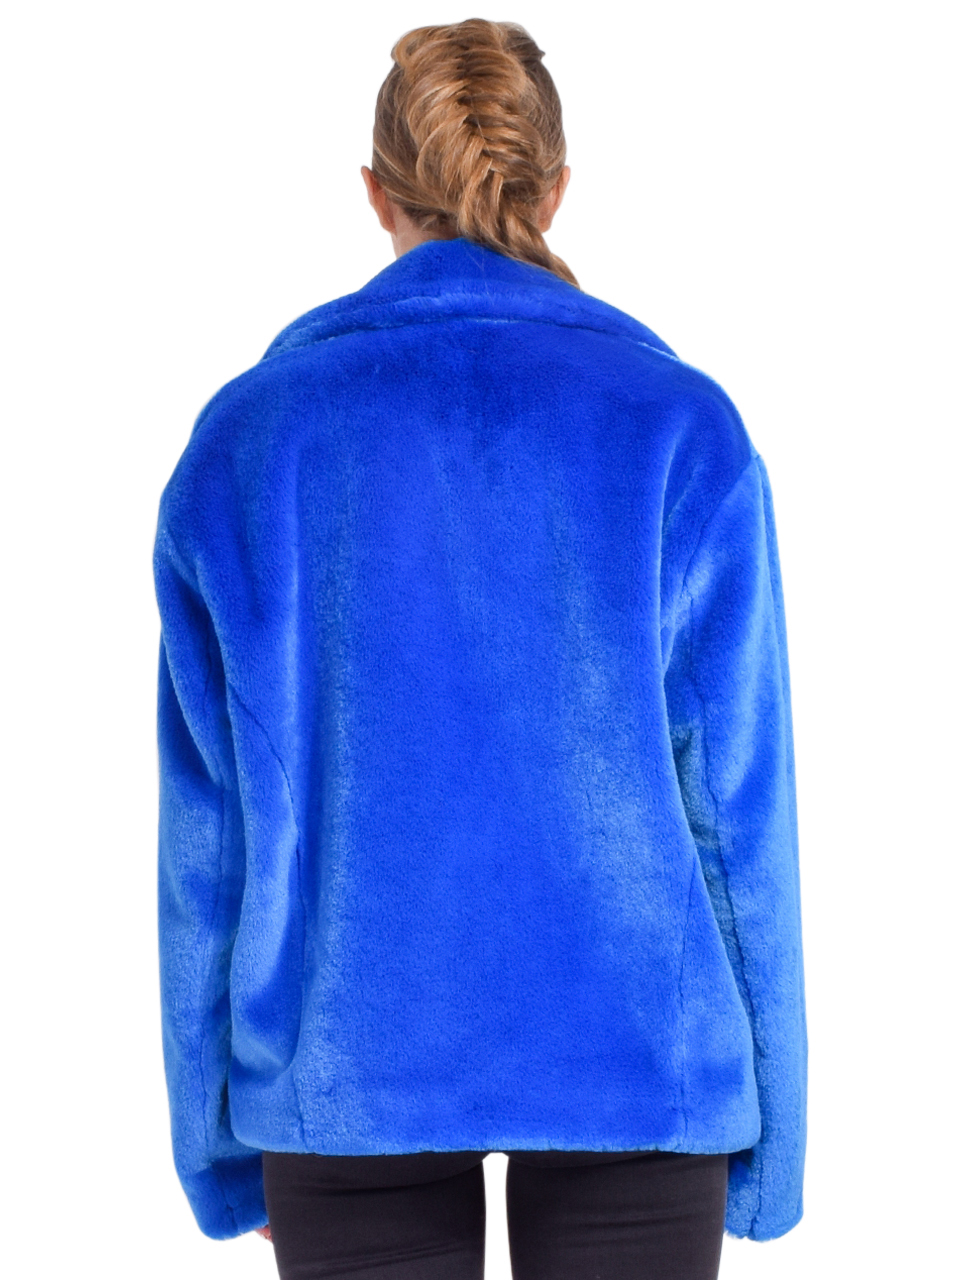 RtA Reese Zip Up Jacket in Magnetic Blue Back View